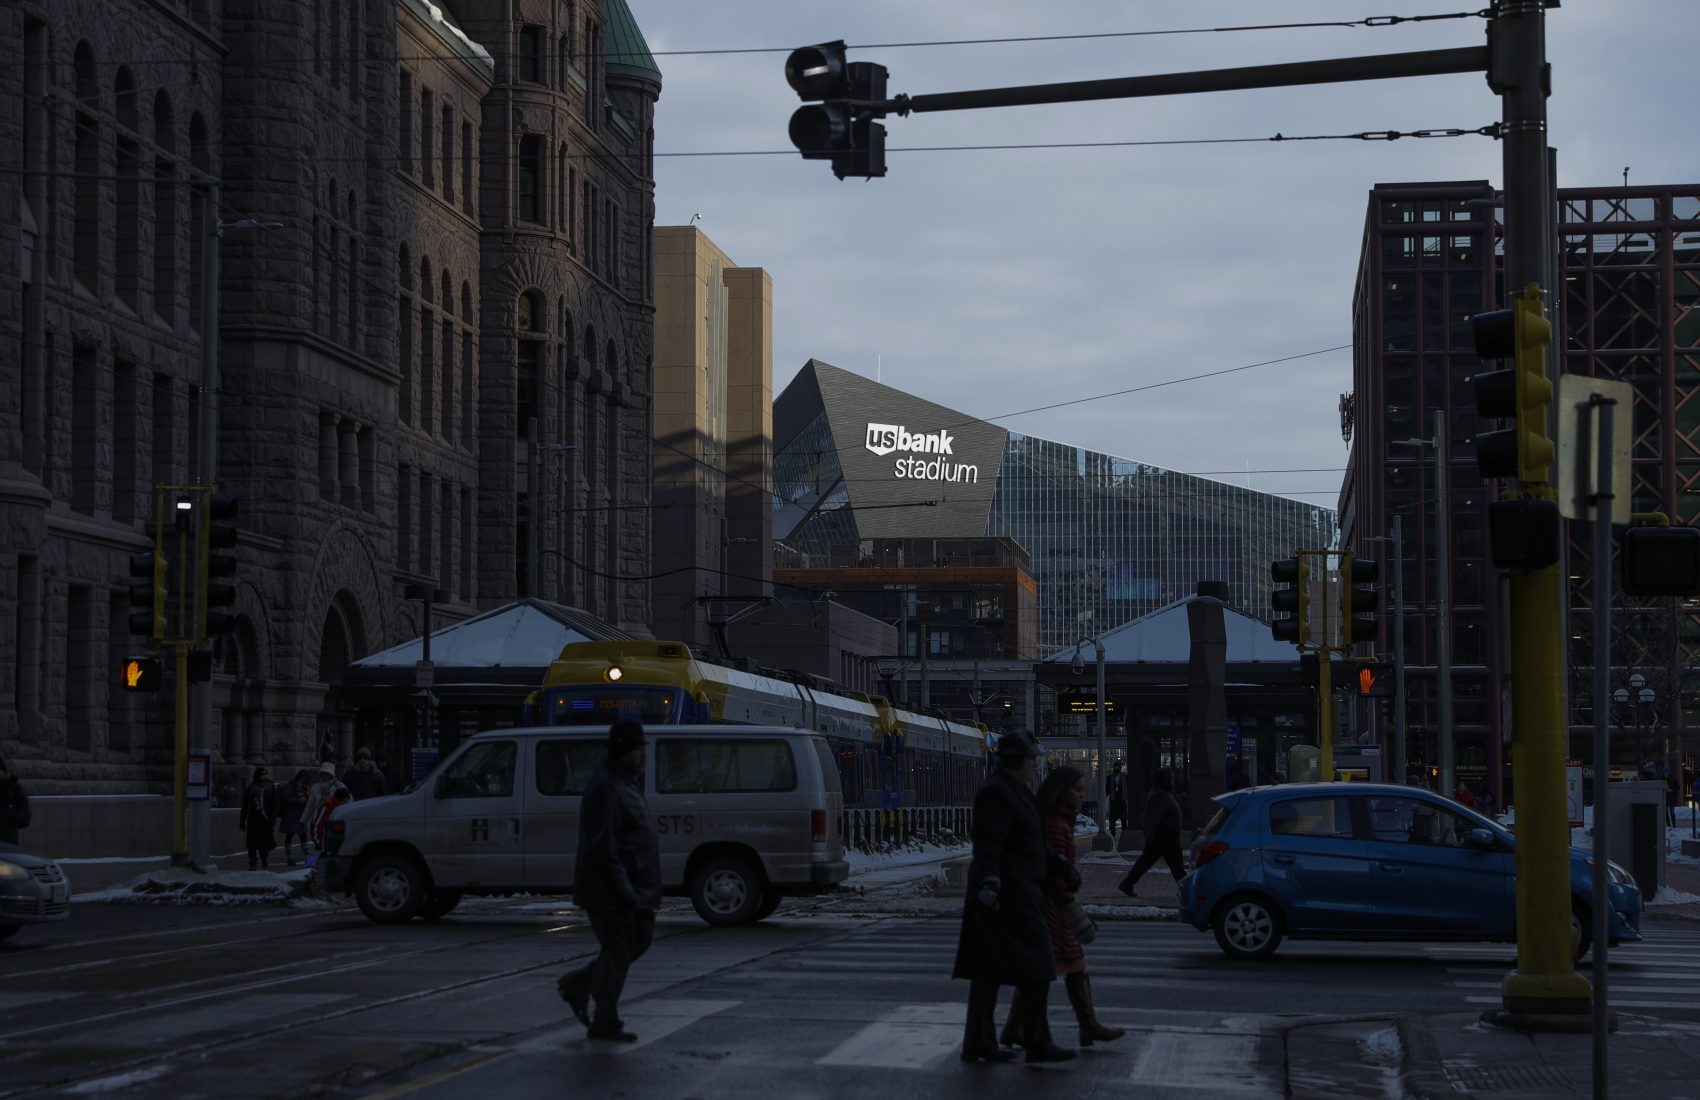 Patriots and Eagles fans are coming to Minneapolis with big reputations. (Matt Slocum/AP)